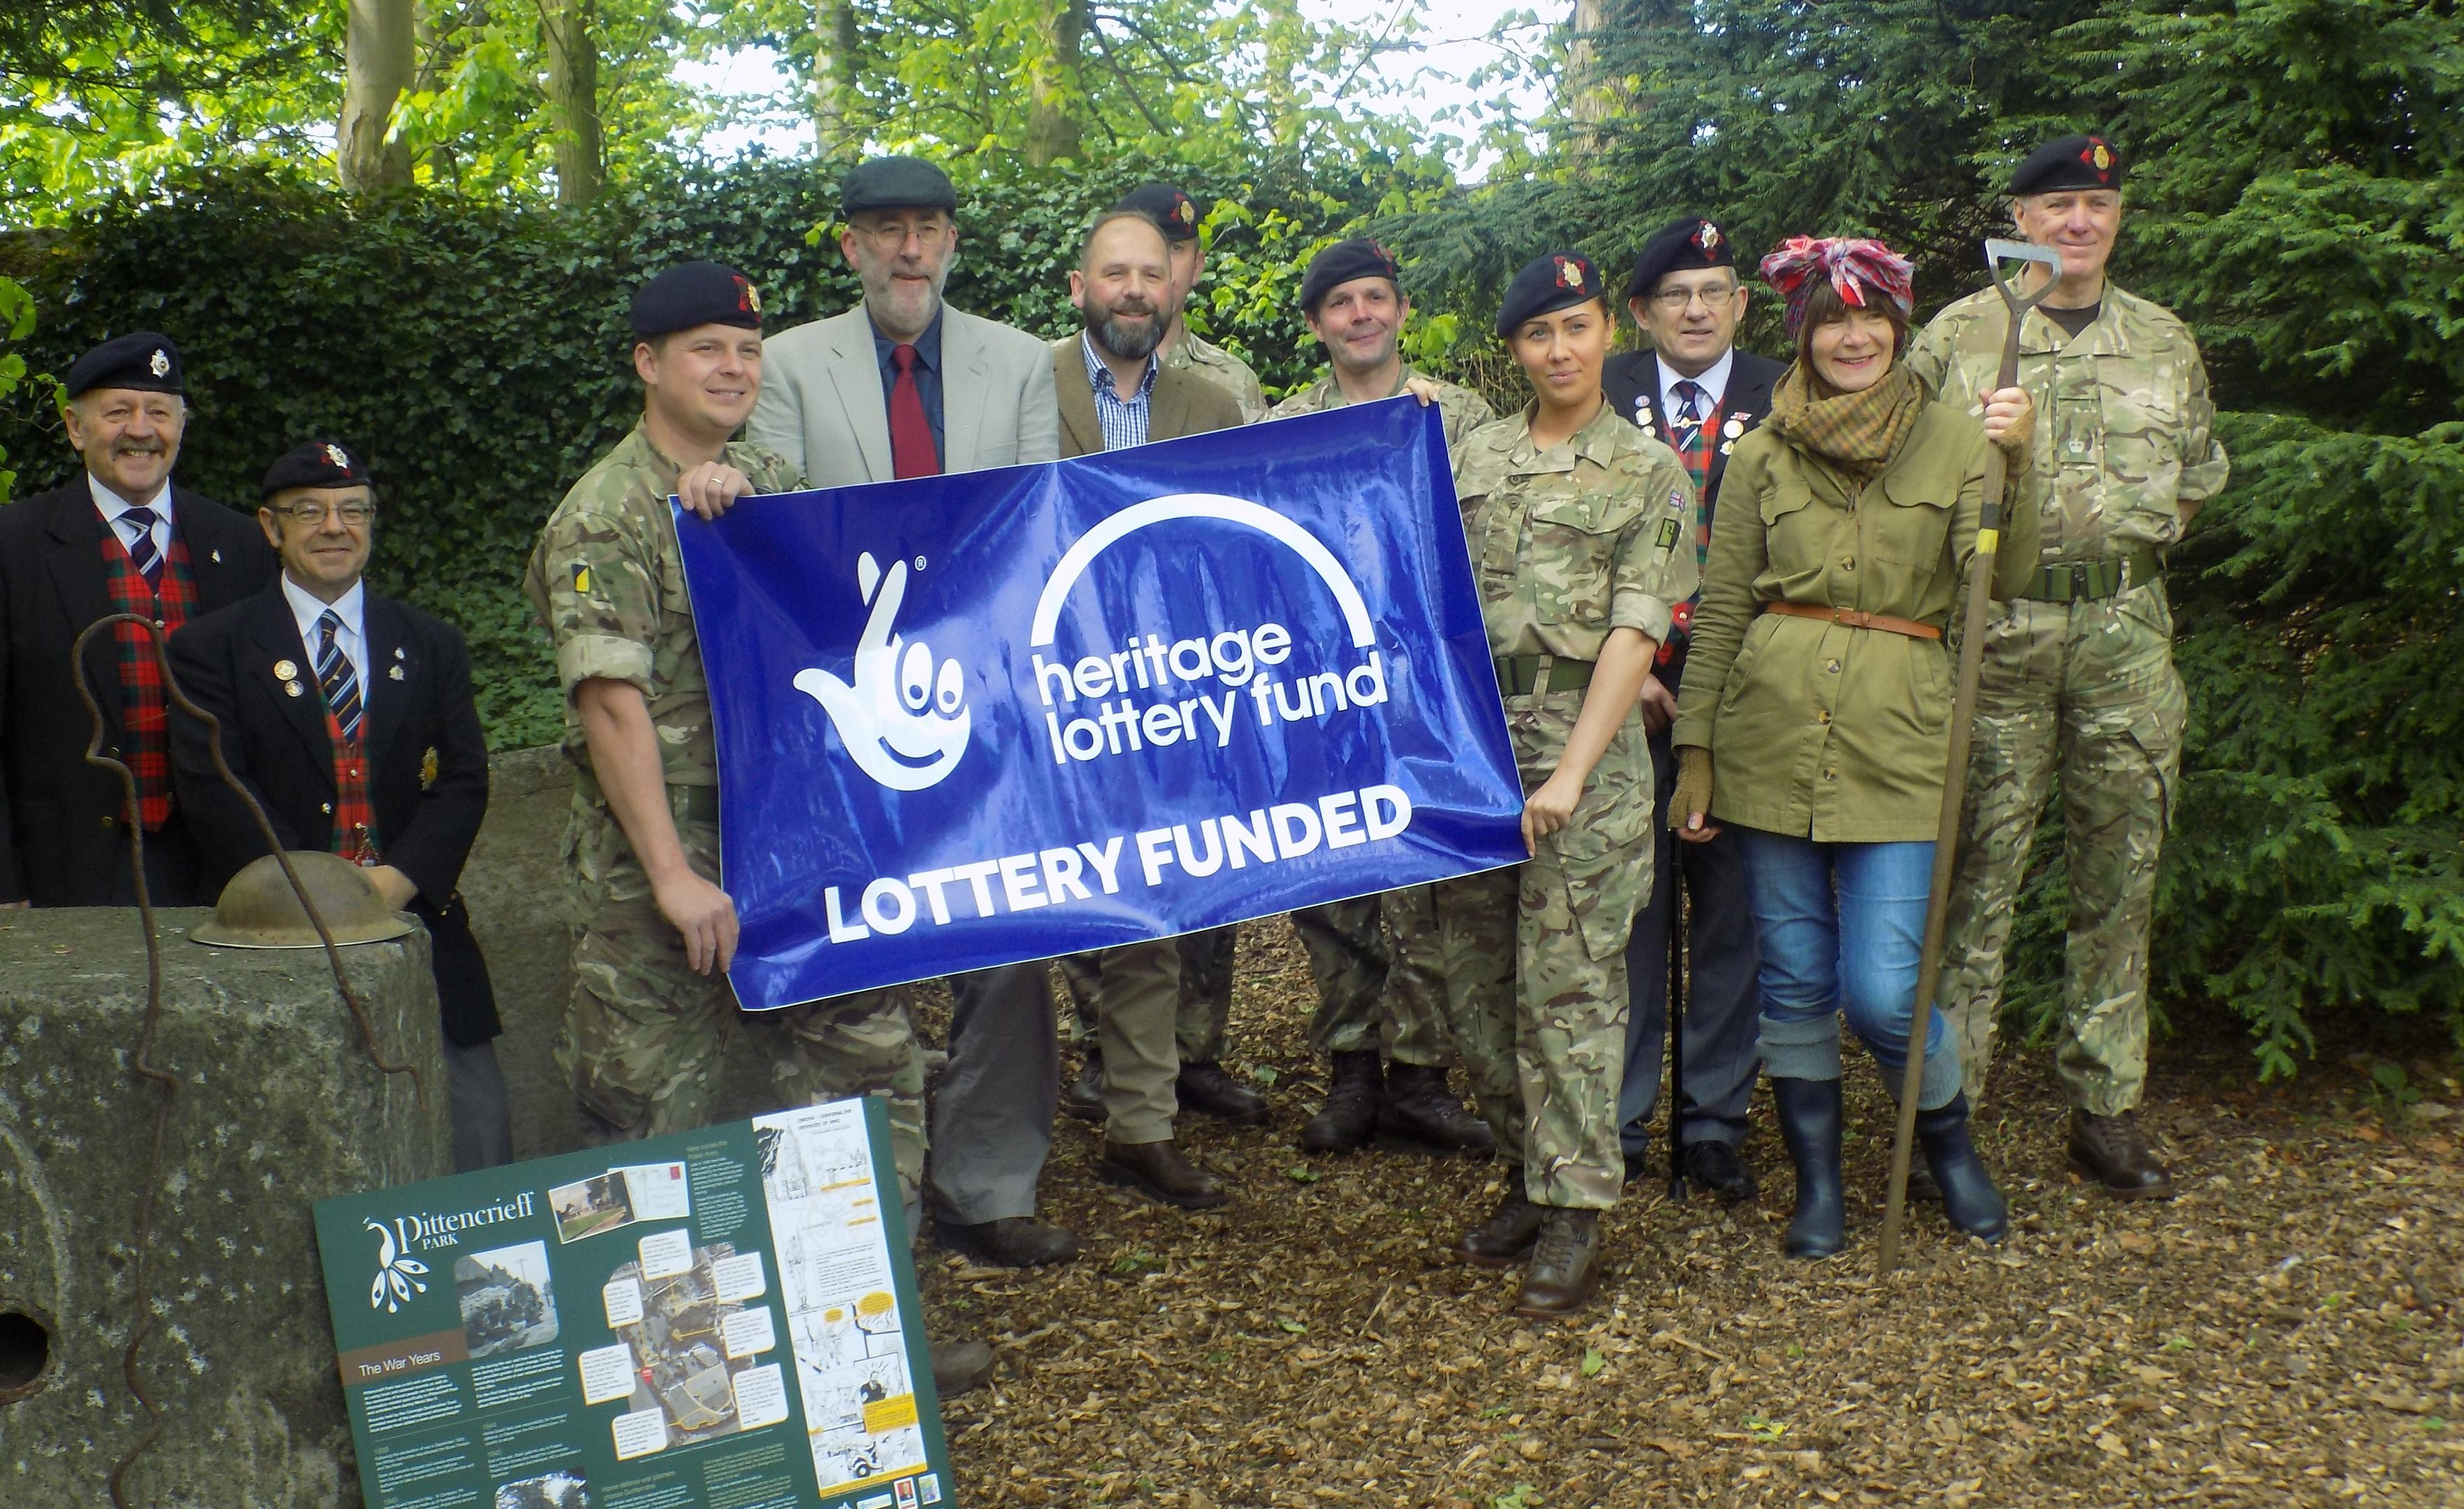 Teams from the 154 (Scottish Regiment) Royal Logistics Core, 239 (Scottish Regiment) Royal Logistics Core, the Royal Army Service Core and Royal Core of Transport Association (Fife Branch) help Forth Pilgrim to launch the festival in Pittencrieff Park.